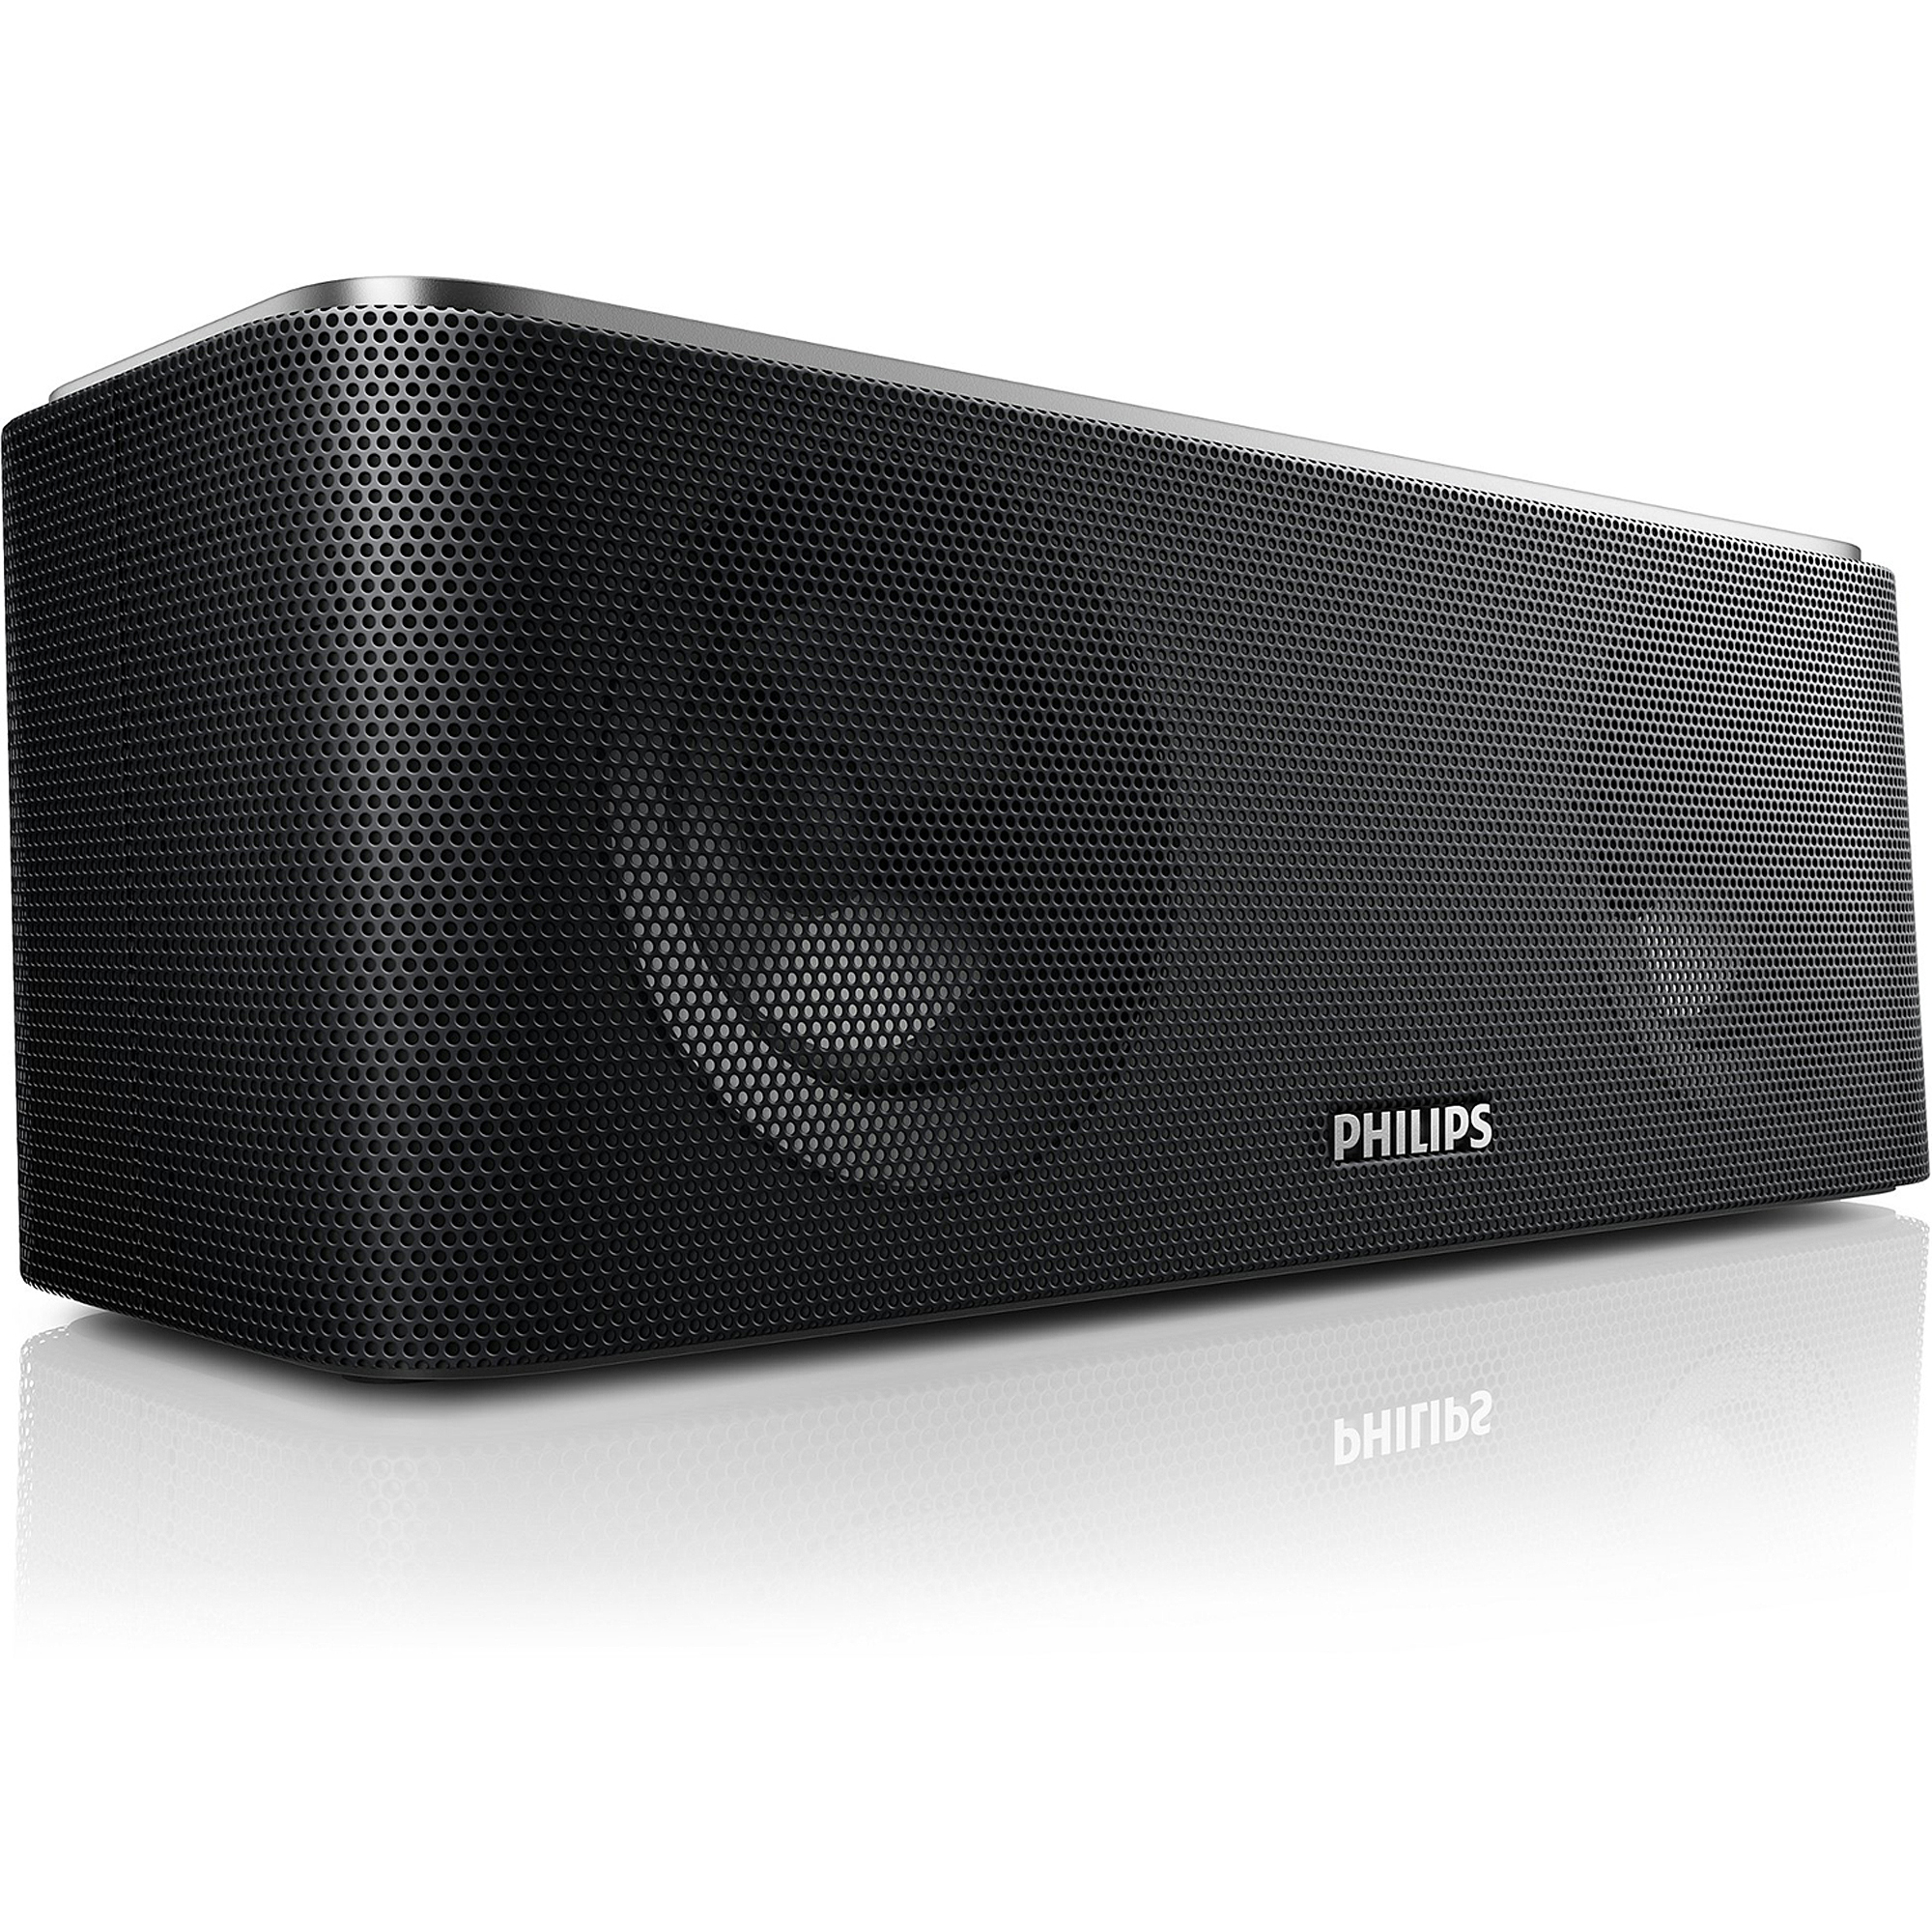 Superior Philips Bluetooth Wireless Portable Speaker With NFC, SB365/37